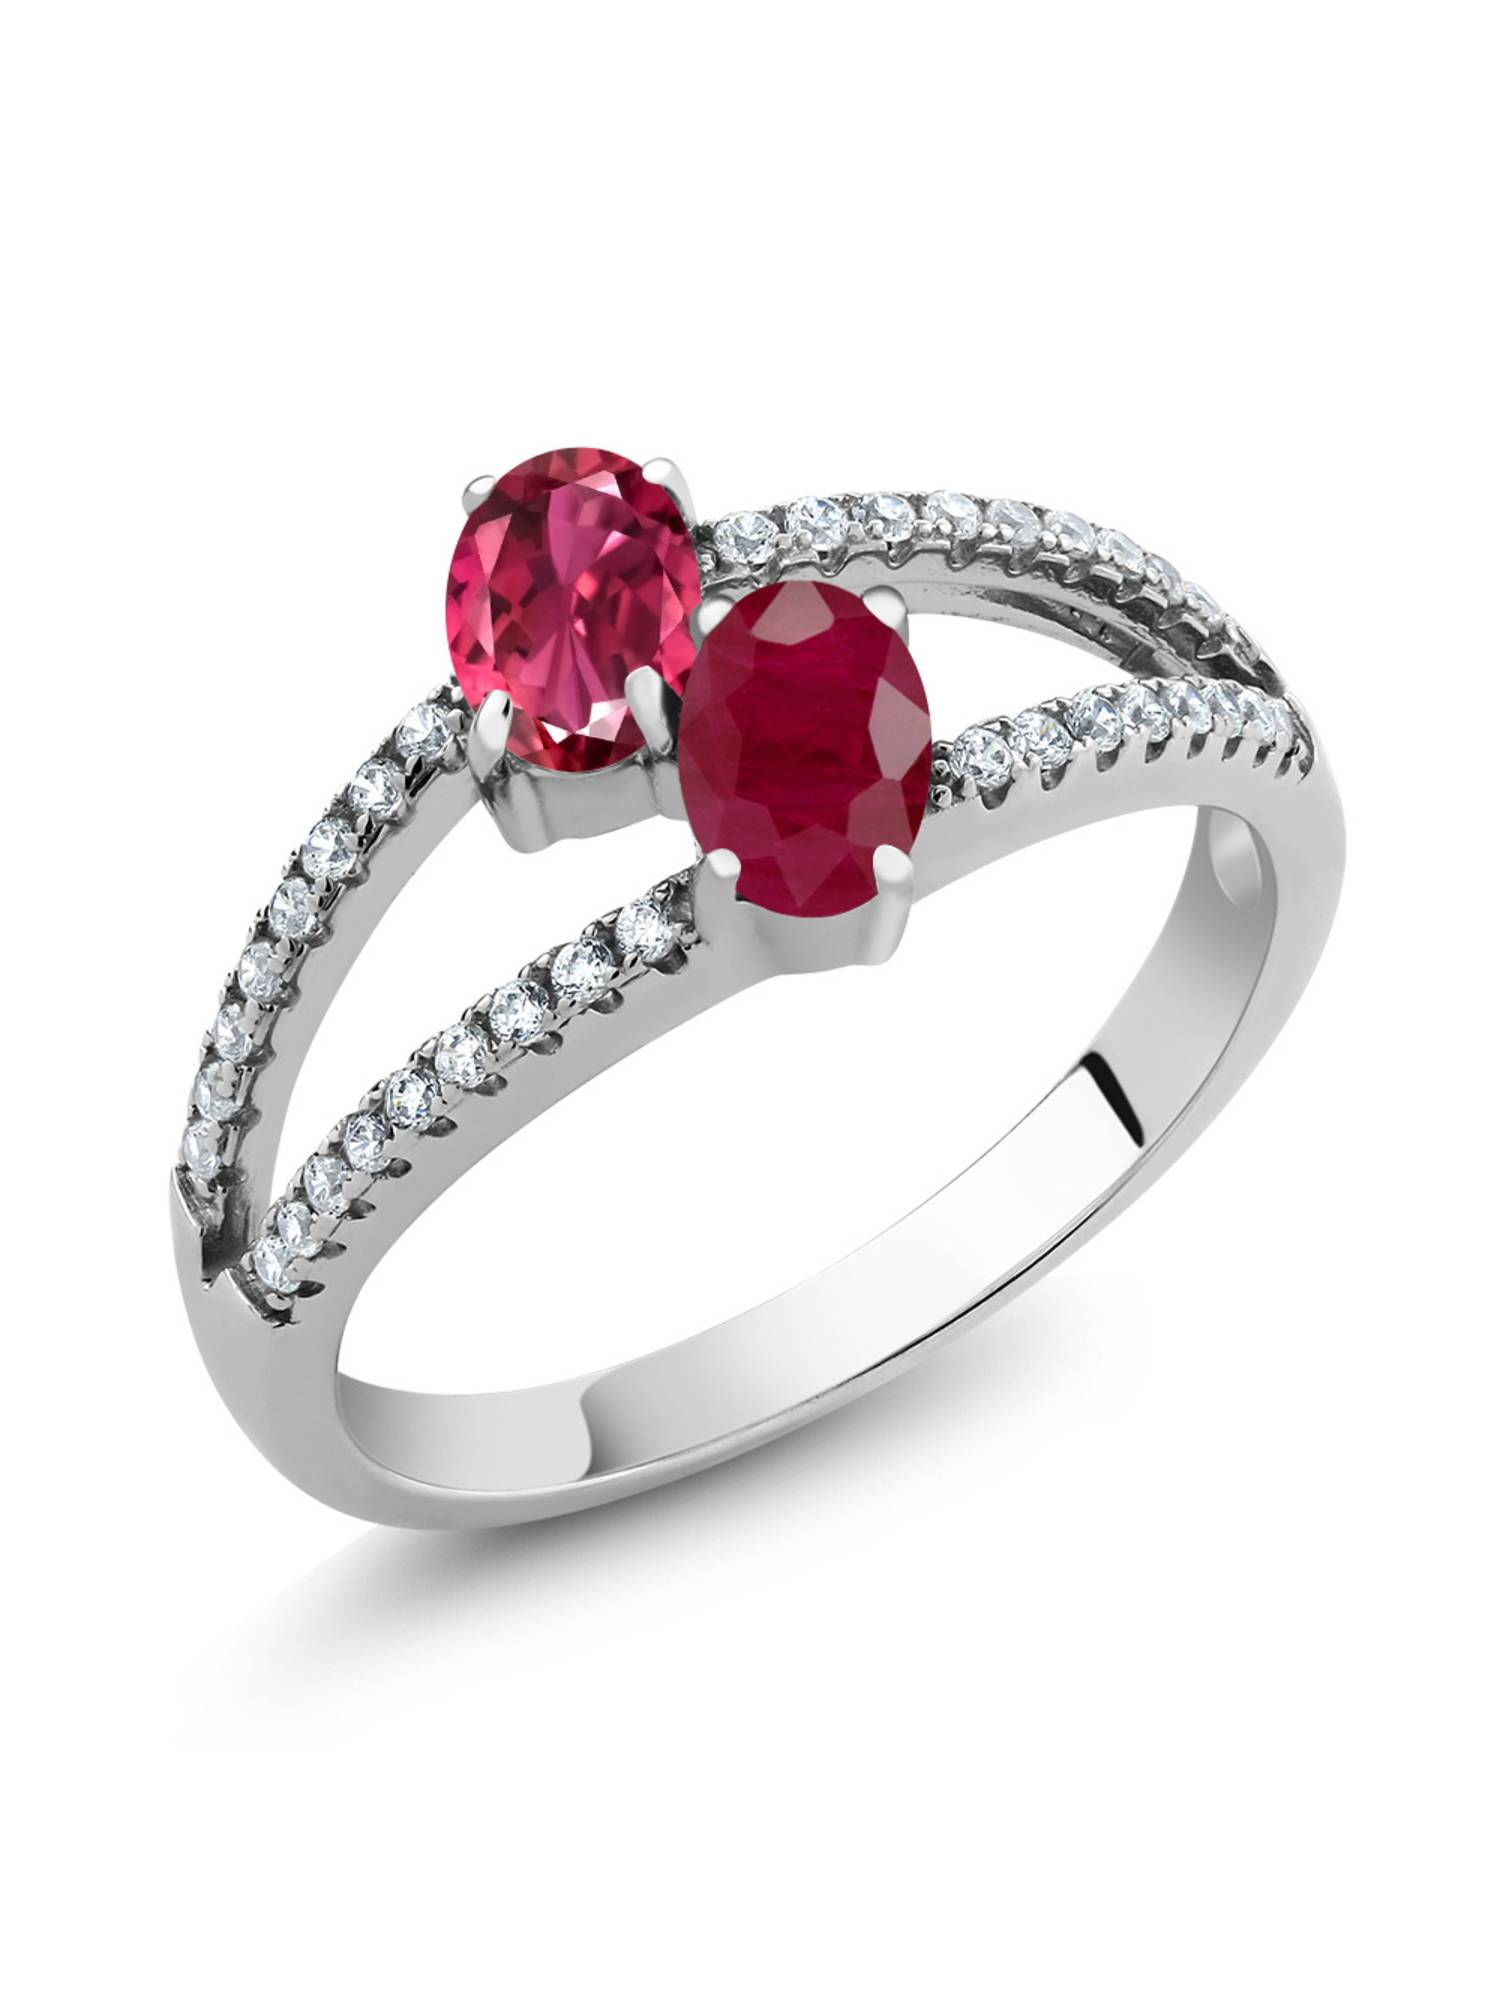 1.51 Ct Oval Pink Tourmaline Red Ruby Two Stone 925 Sterling Silver Ring by